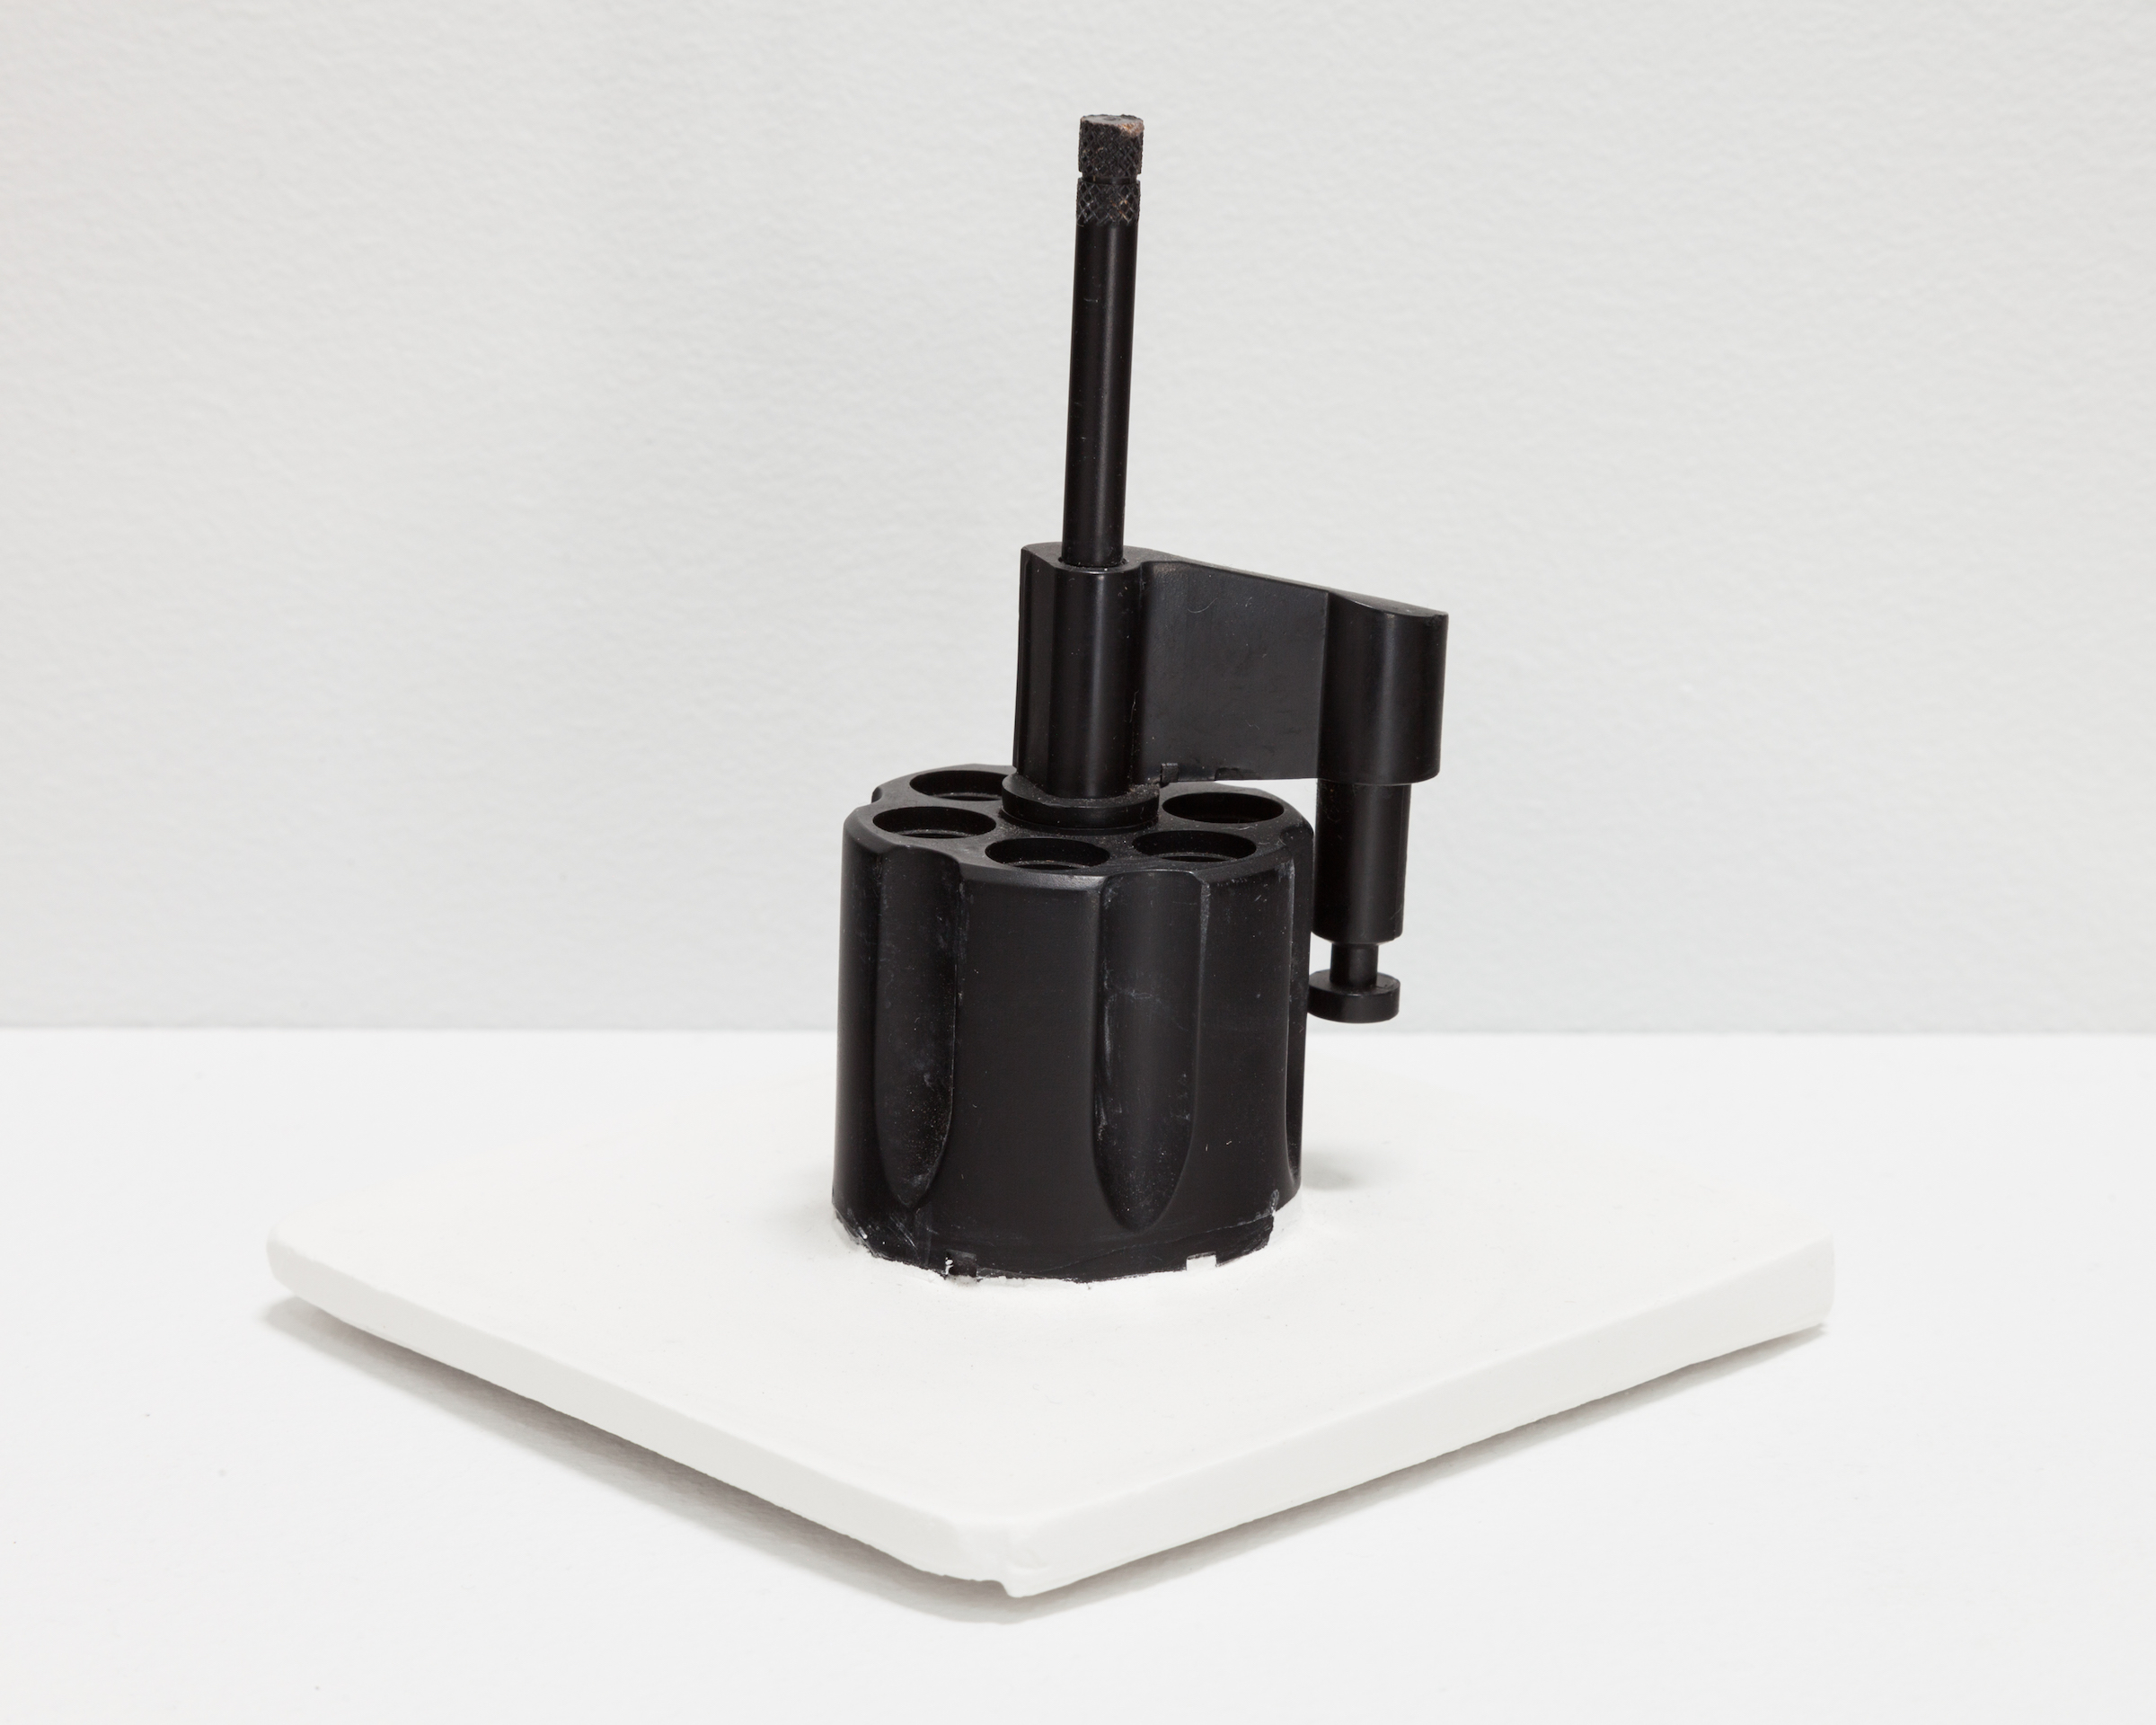 Deborah Hede,  Black Knob with turning mechanism , 2014, unidentified plastic fragment, plaster, 5 × 4 × 4 in